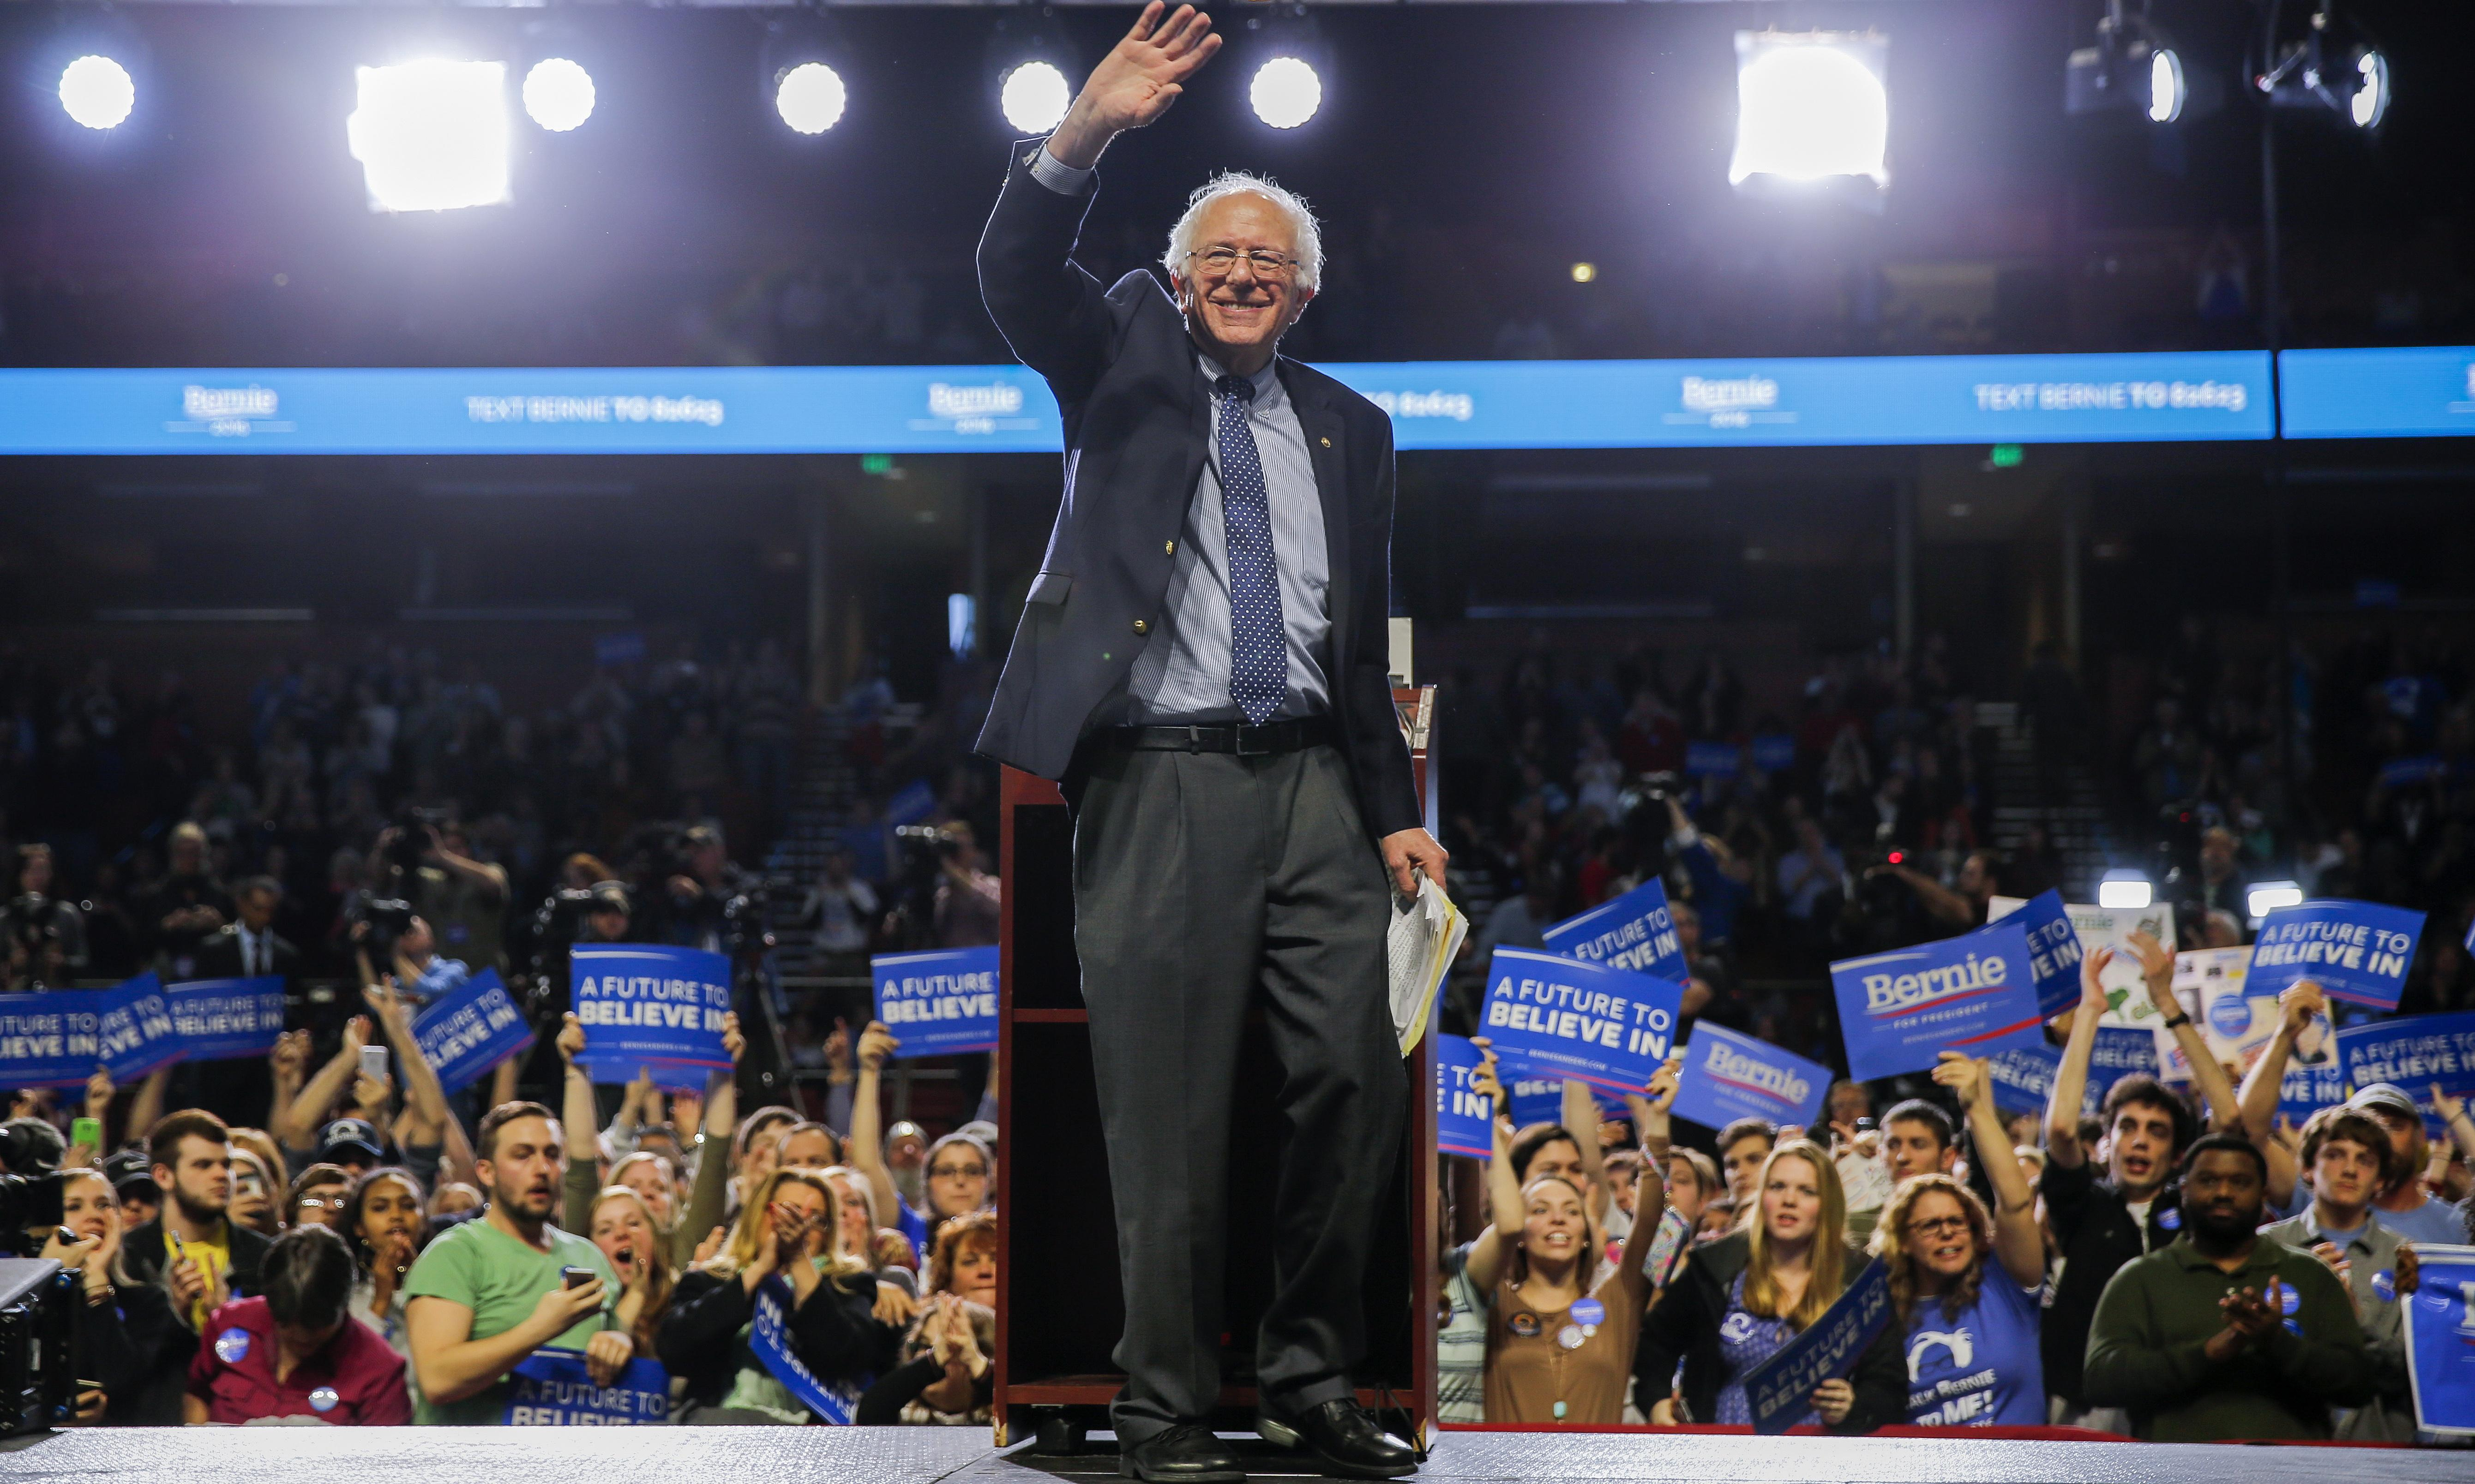 US briefing: Bernie fundraising, cervical cancer and high-speed rail